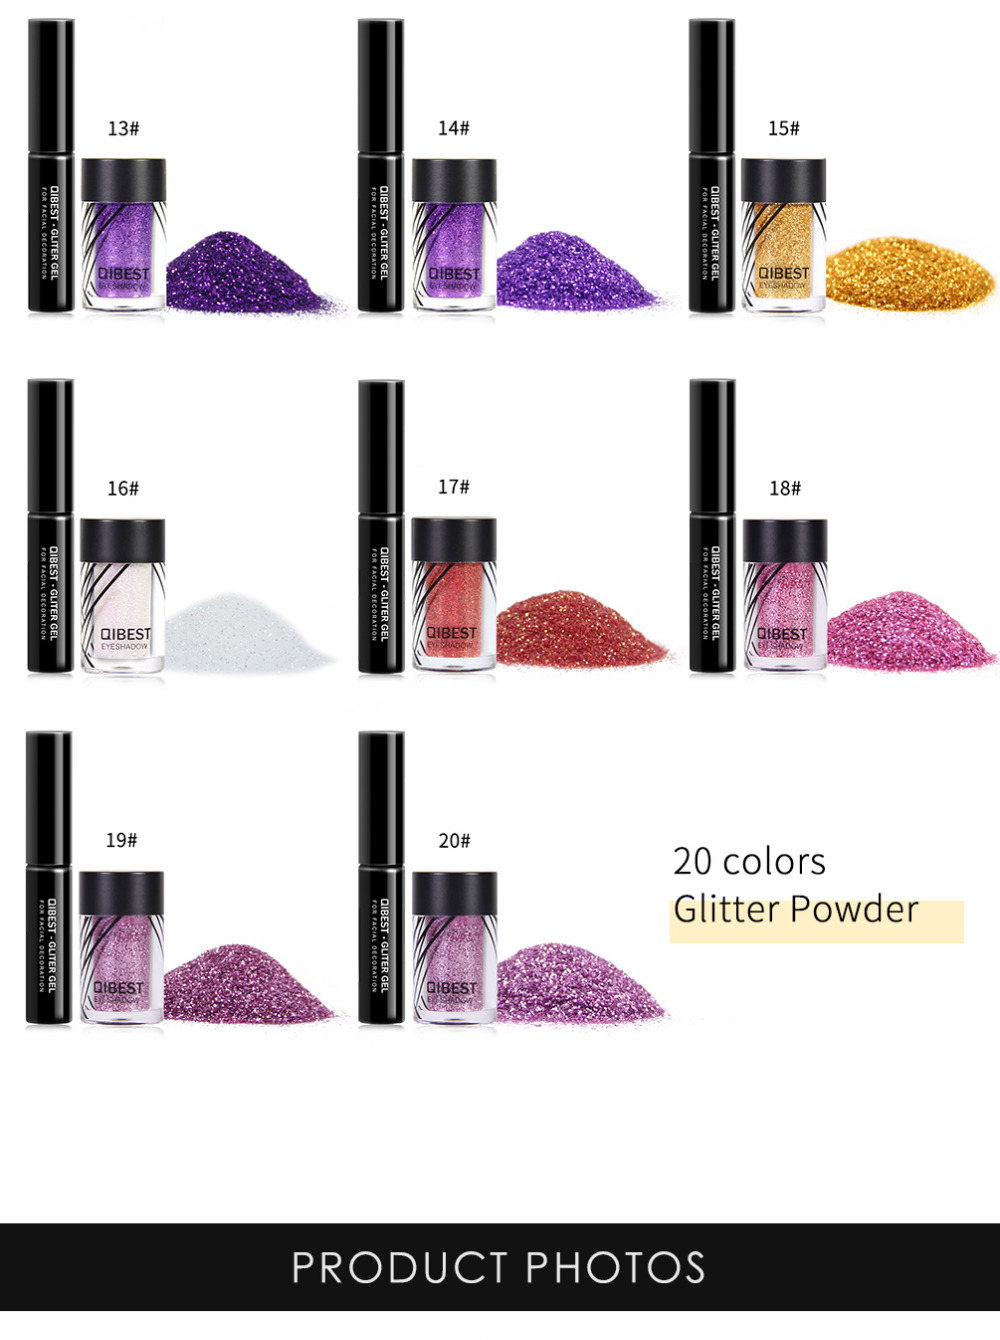 Eye Shadow Beauty & Health 2019 Latest Design Qibest Shimmer Glitter Powder Eye Shadow Face Eyes Lips Nails And Glue Waterproof Colorful Laser-makeup Brand Qibest #l18036